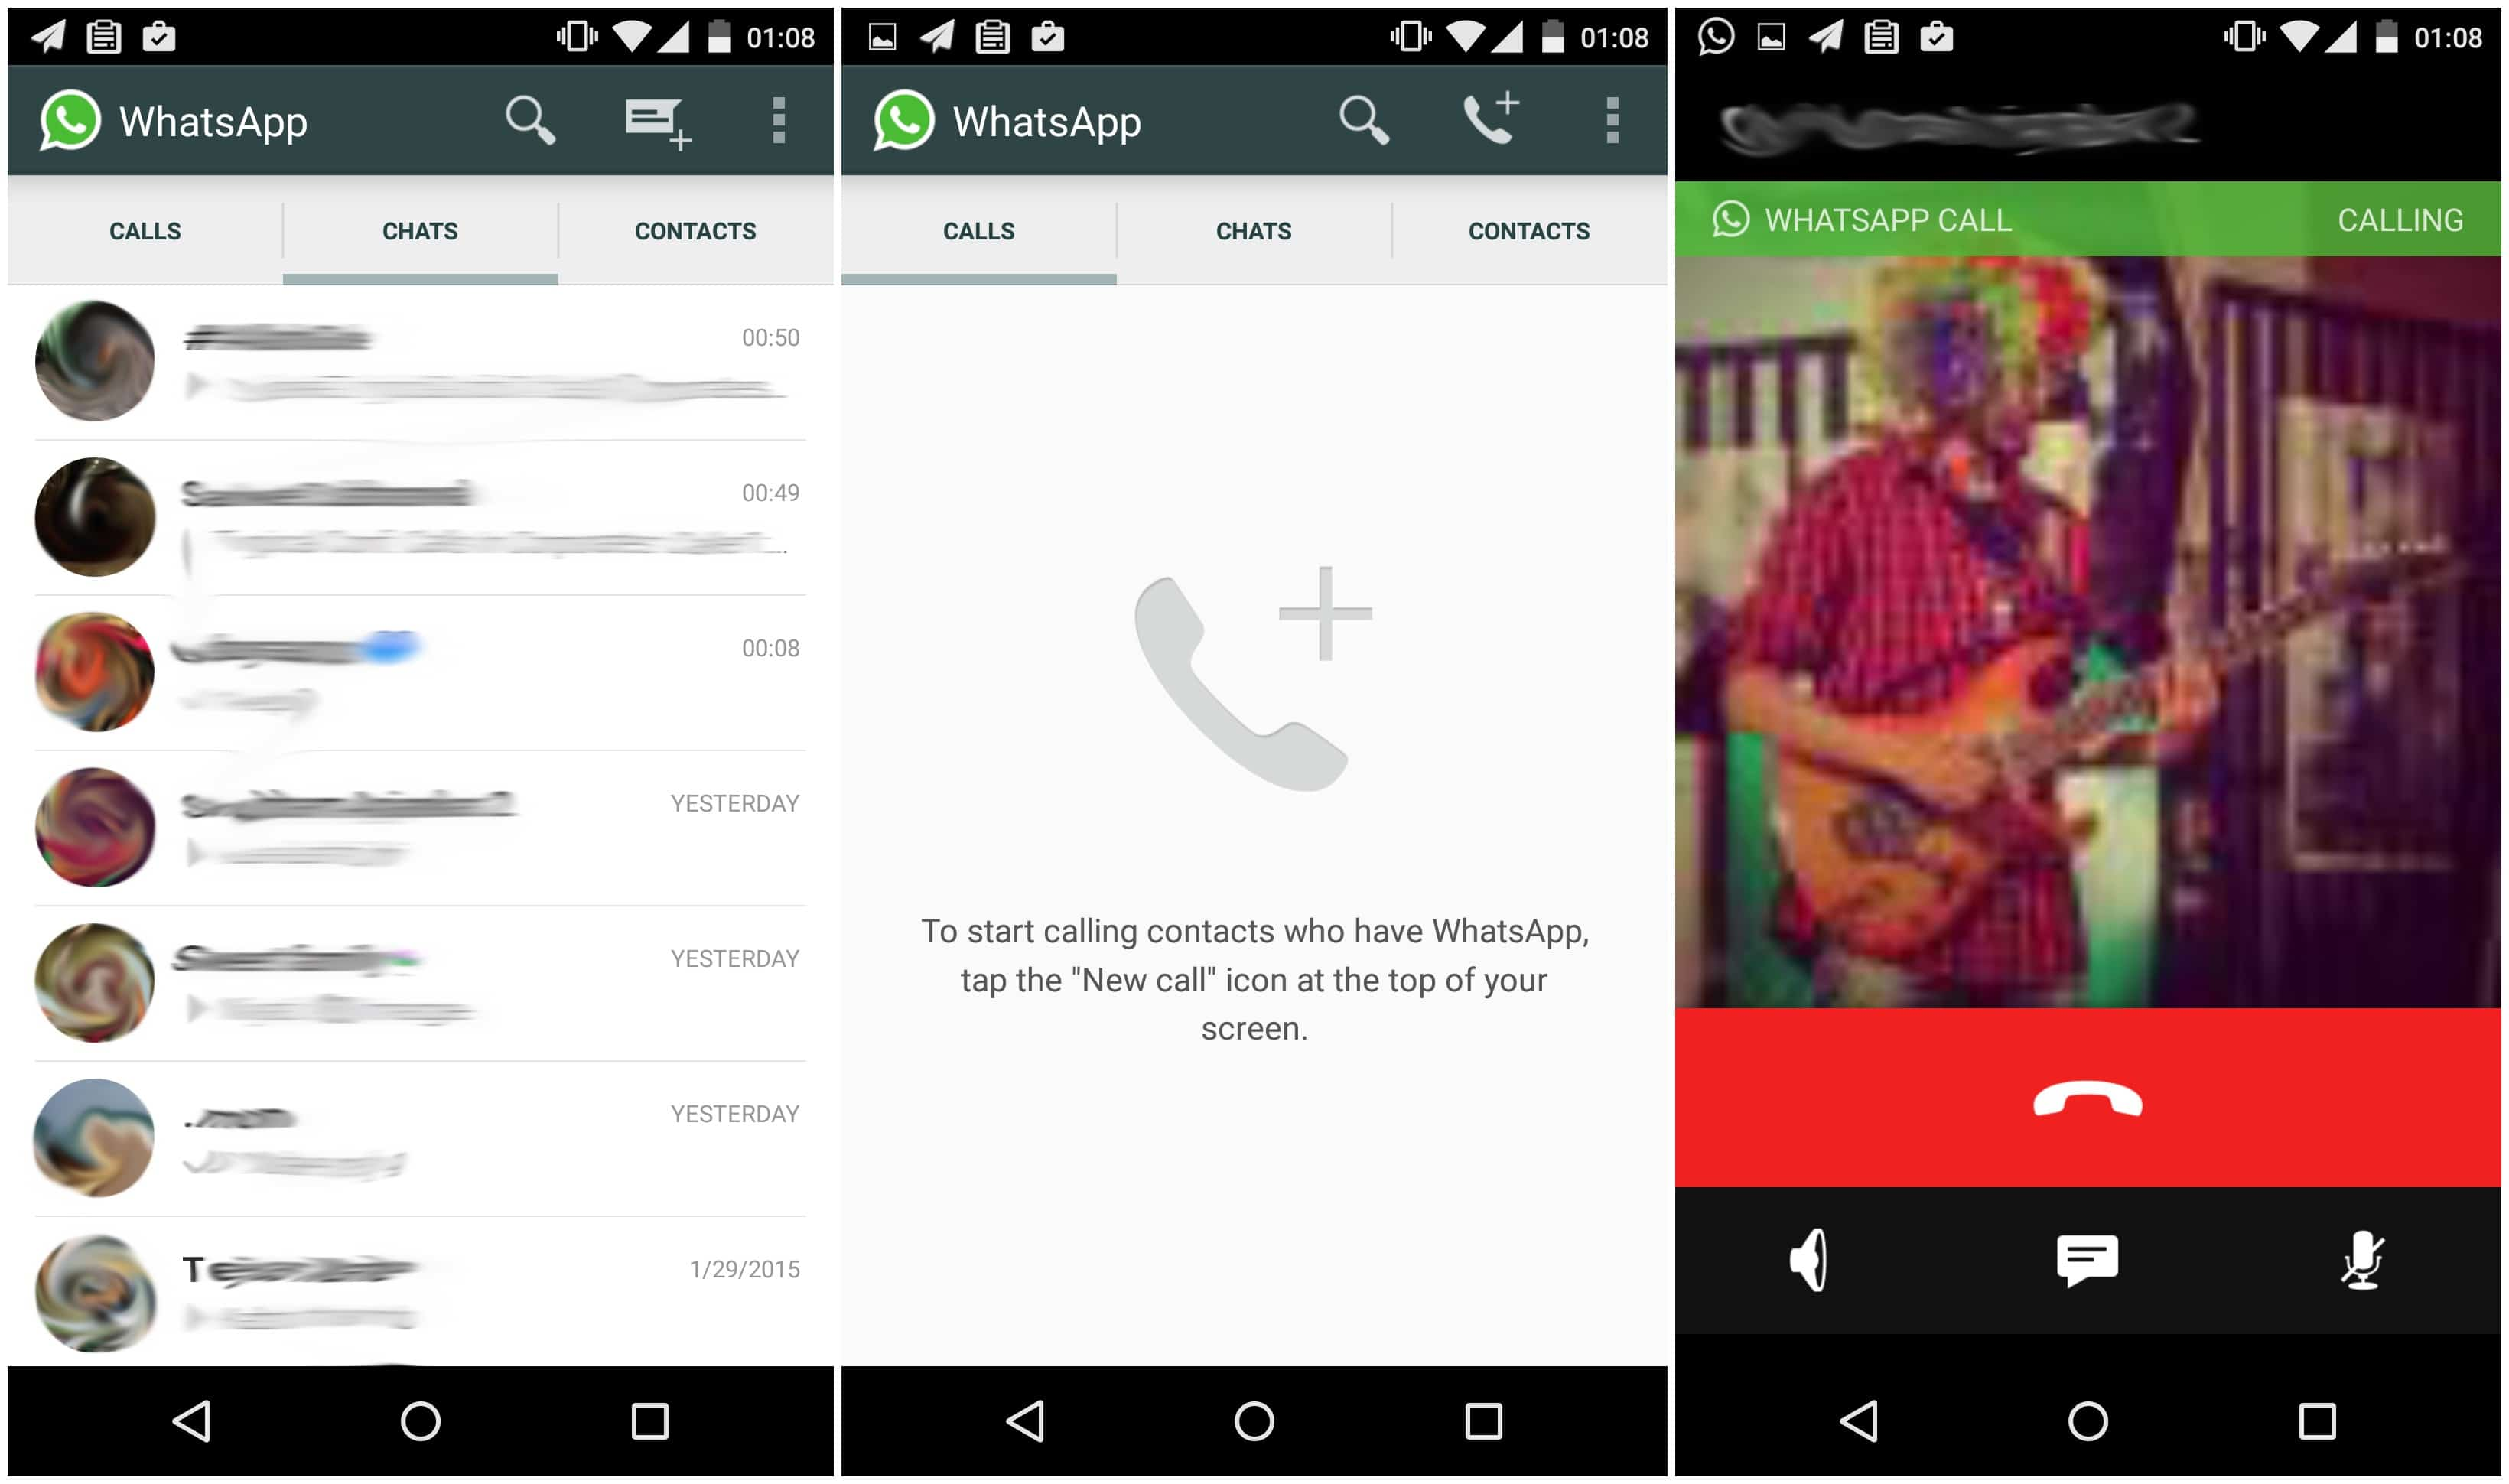 WhatsApp Calling Rolling Out